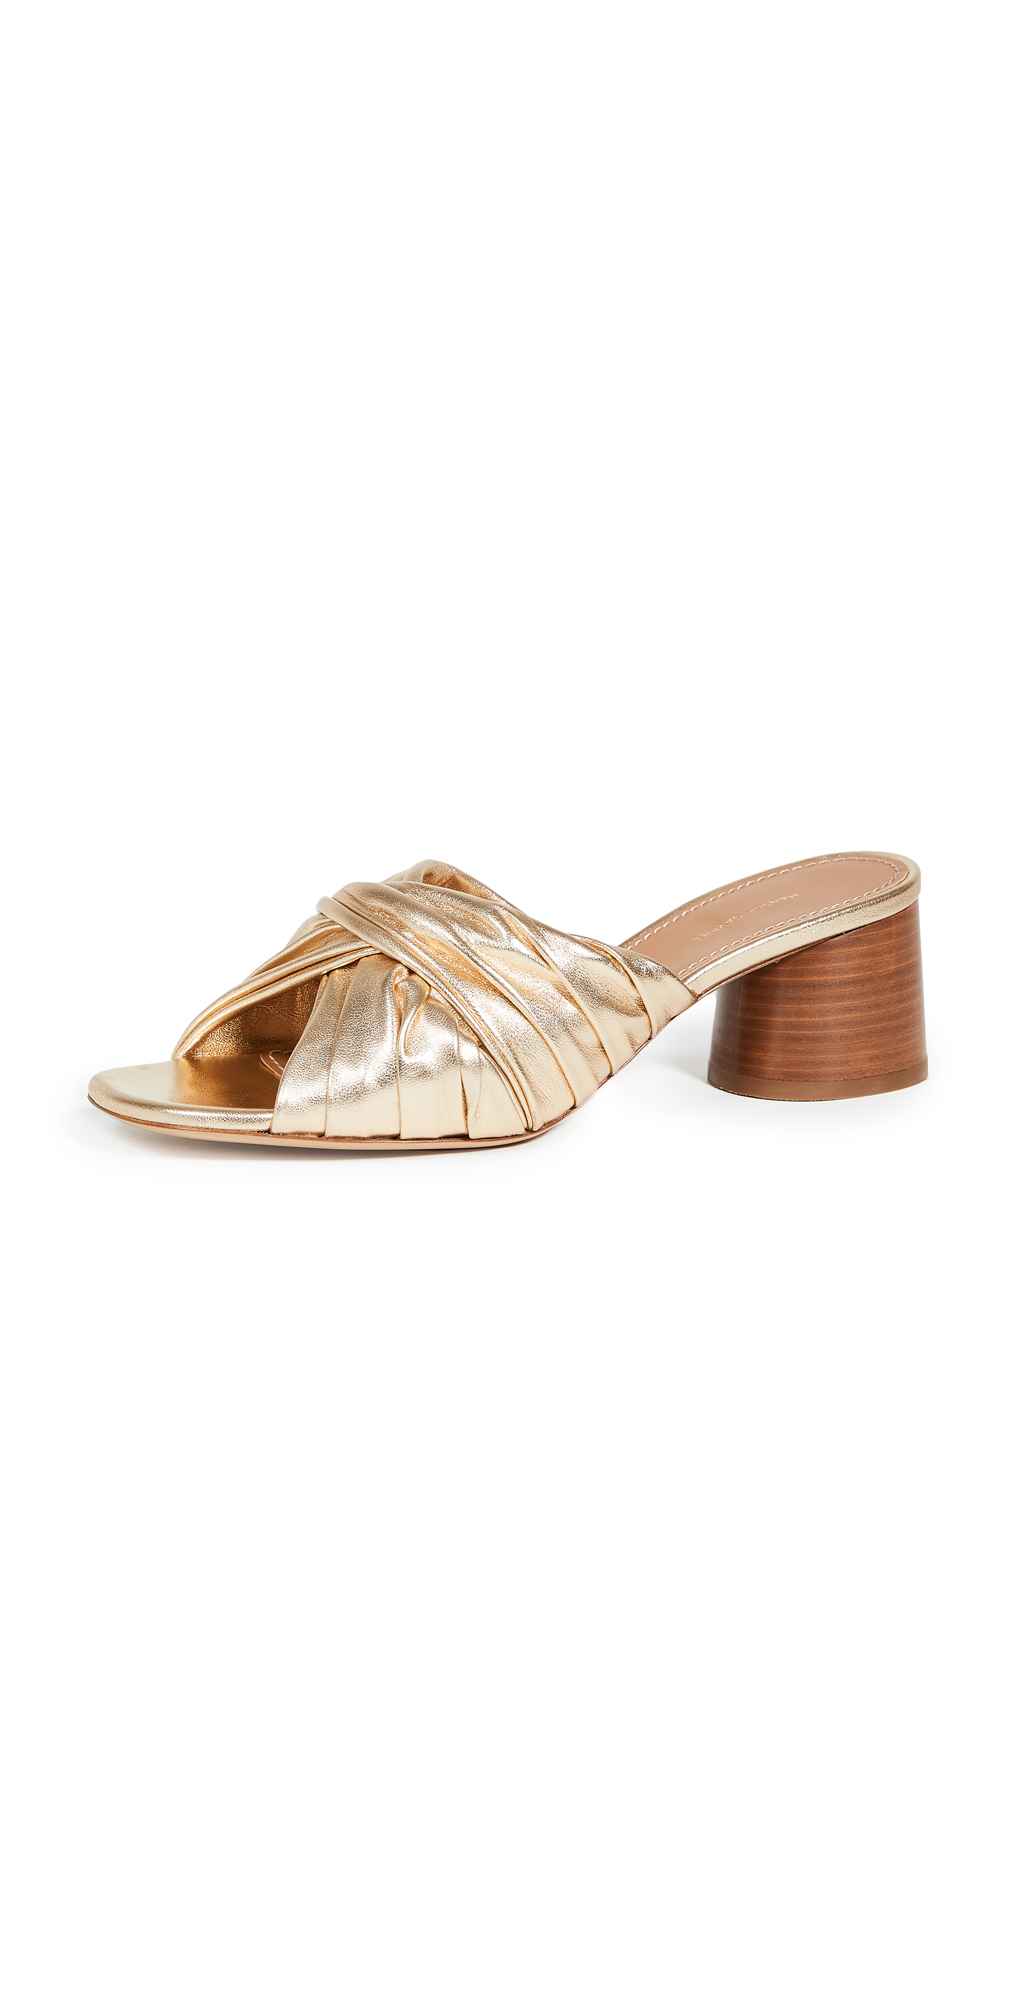 Mansur Gavriel Ruched Open Toe Mule Slides